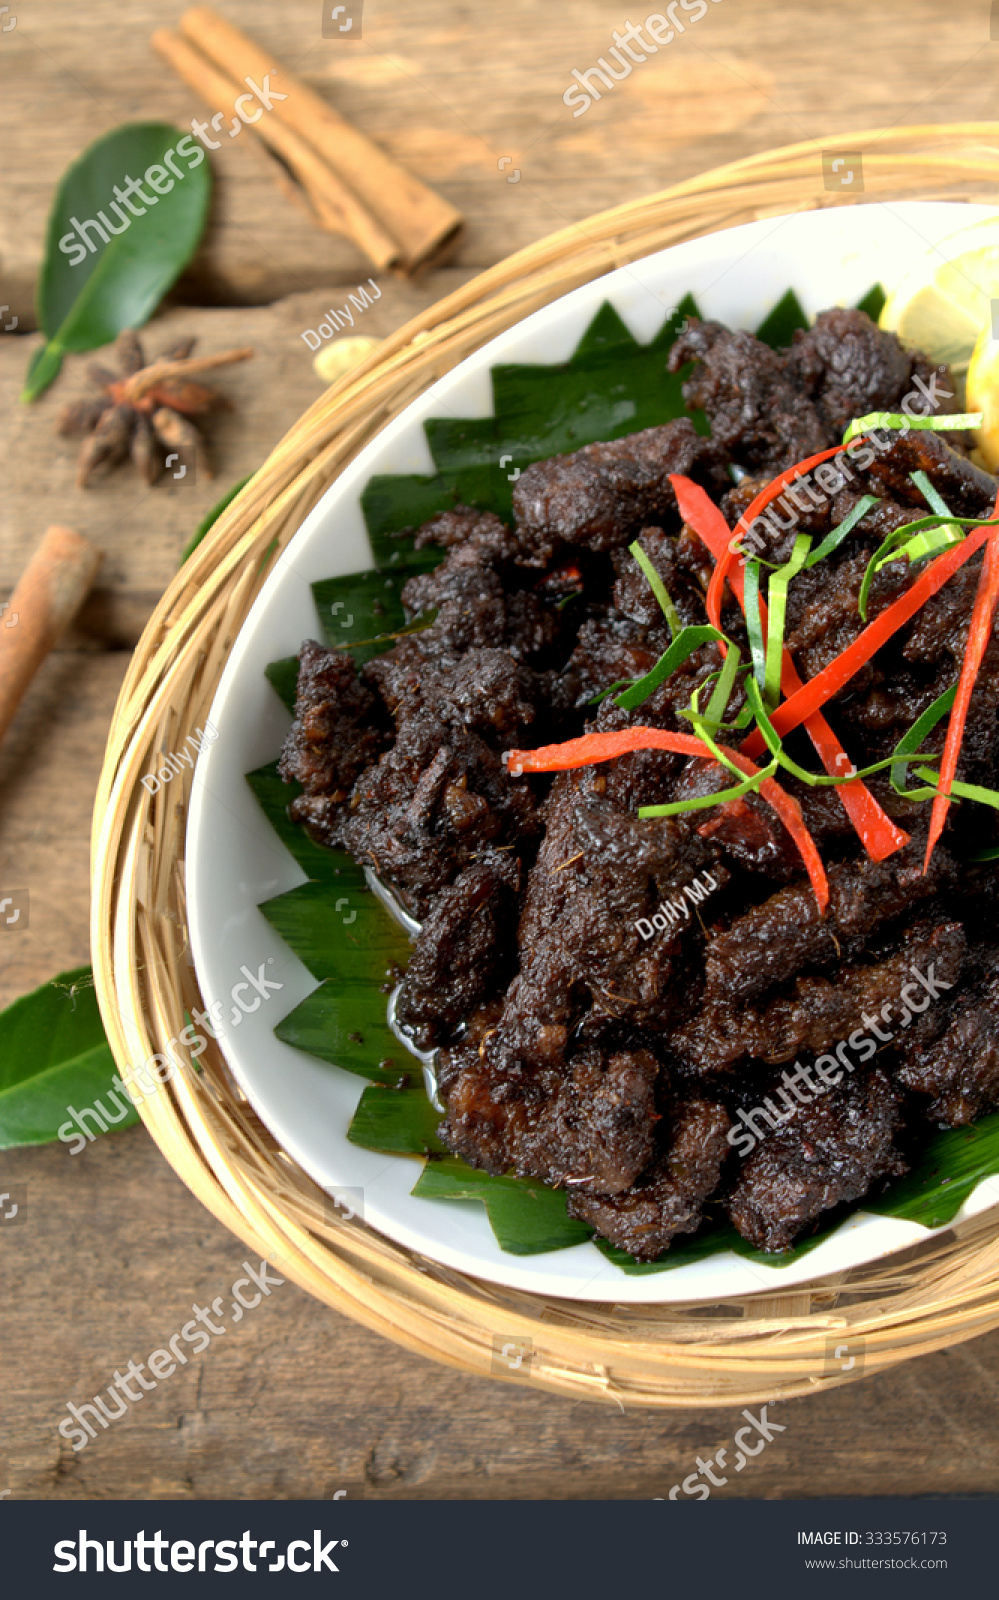 Background Masak Royalty Free Daging Masak Hitam Beef Cooked With 333576173